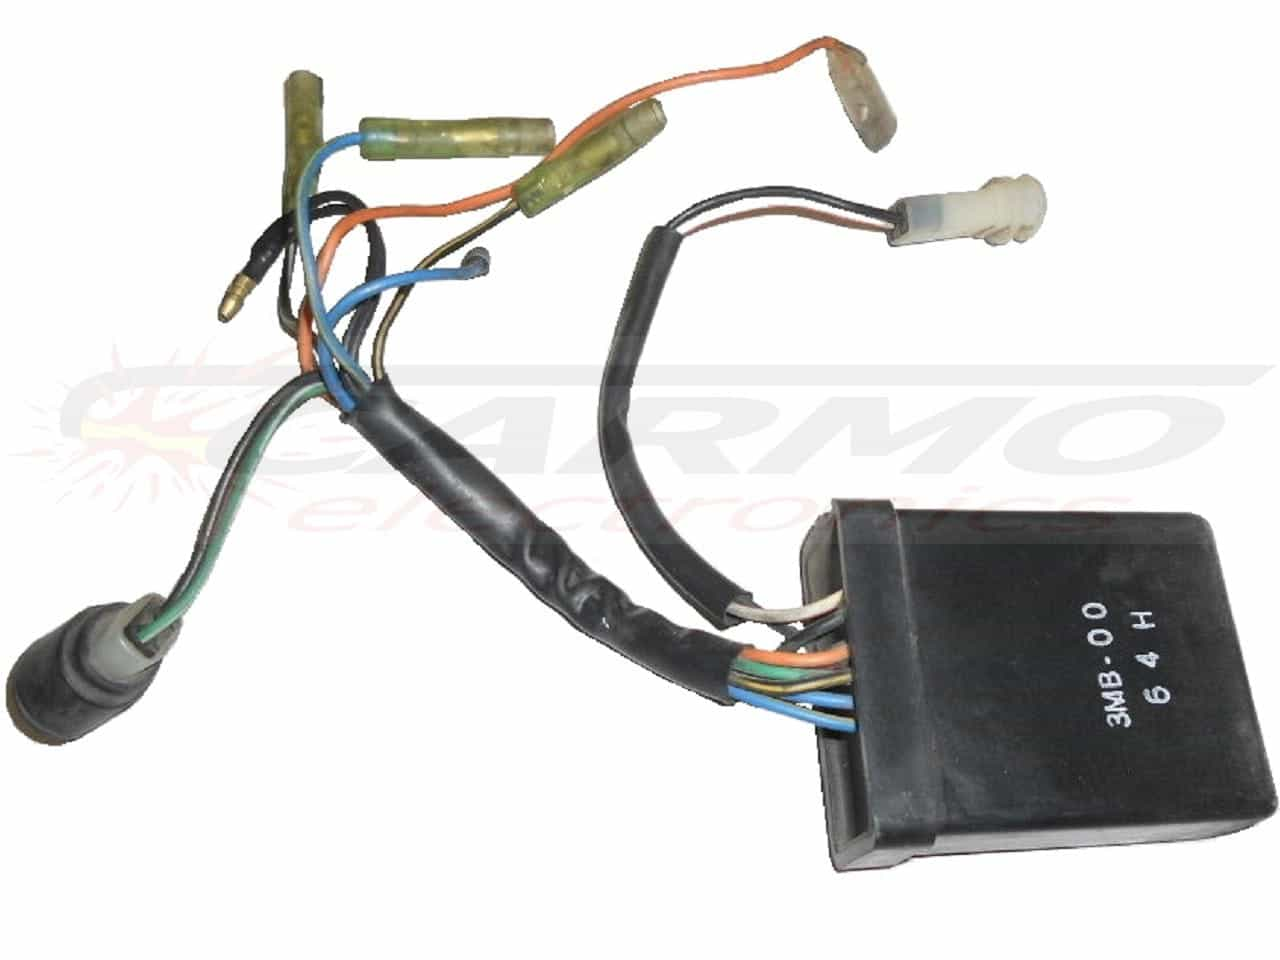 KTM-125-LC2-CDI-ignition-box-in-3MB-00 Ktm Wiring Diagram on ktm exc wiring diagram, bmw r100 wiring diagram, ktm 525 wiring diagram, ktm 450 wiring diagram, ktm 300 wiring diagram, ktm 400 wiring diagram, ktm 250 engine diagram, yamaha raptor wiring diagram,